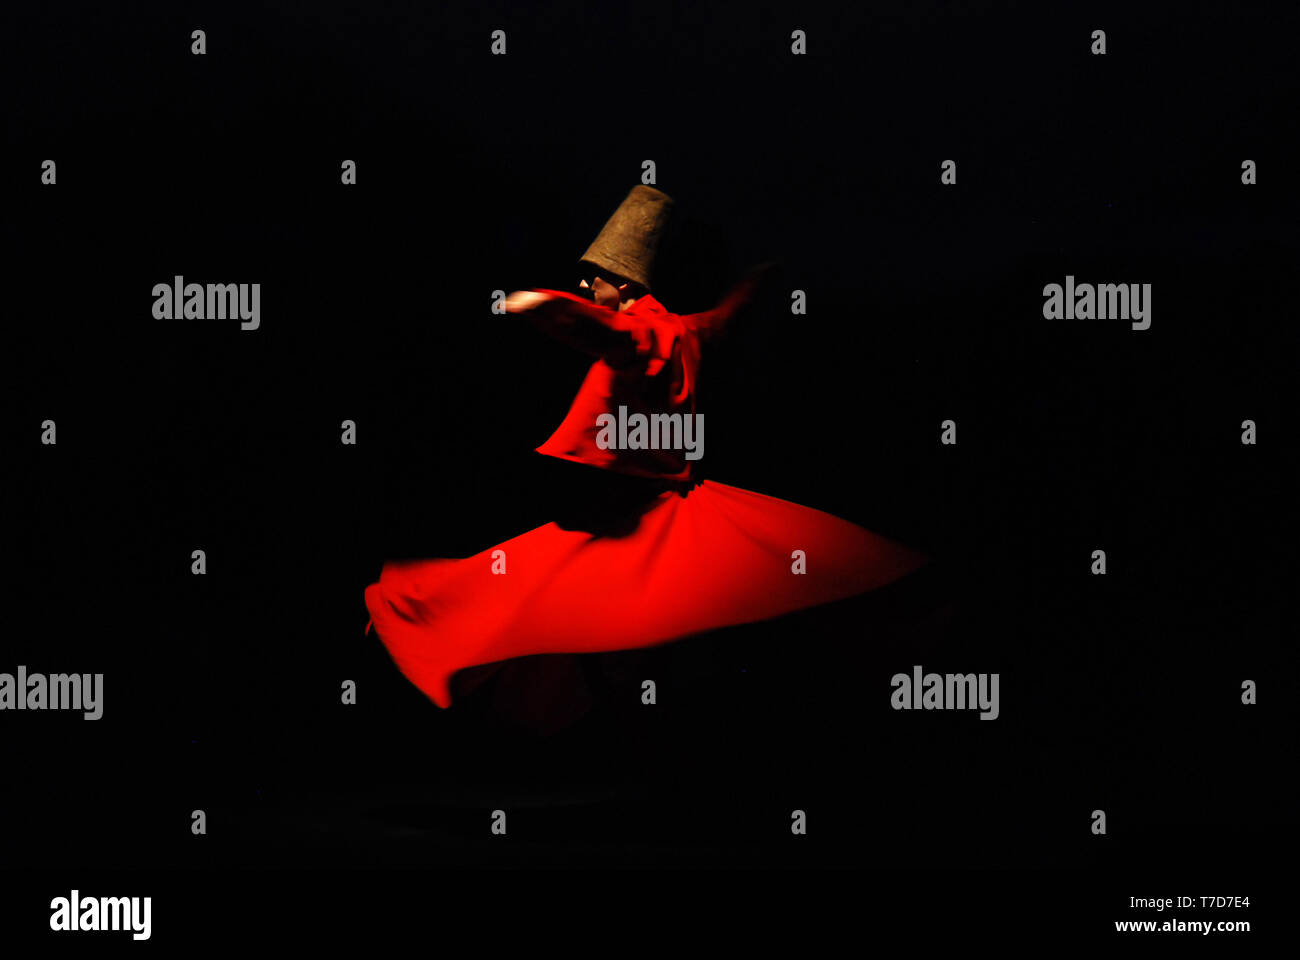 Whirling dervish on black background in red costume - Stock Image